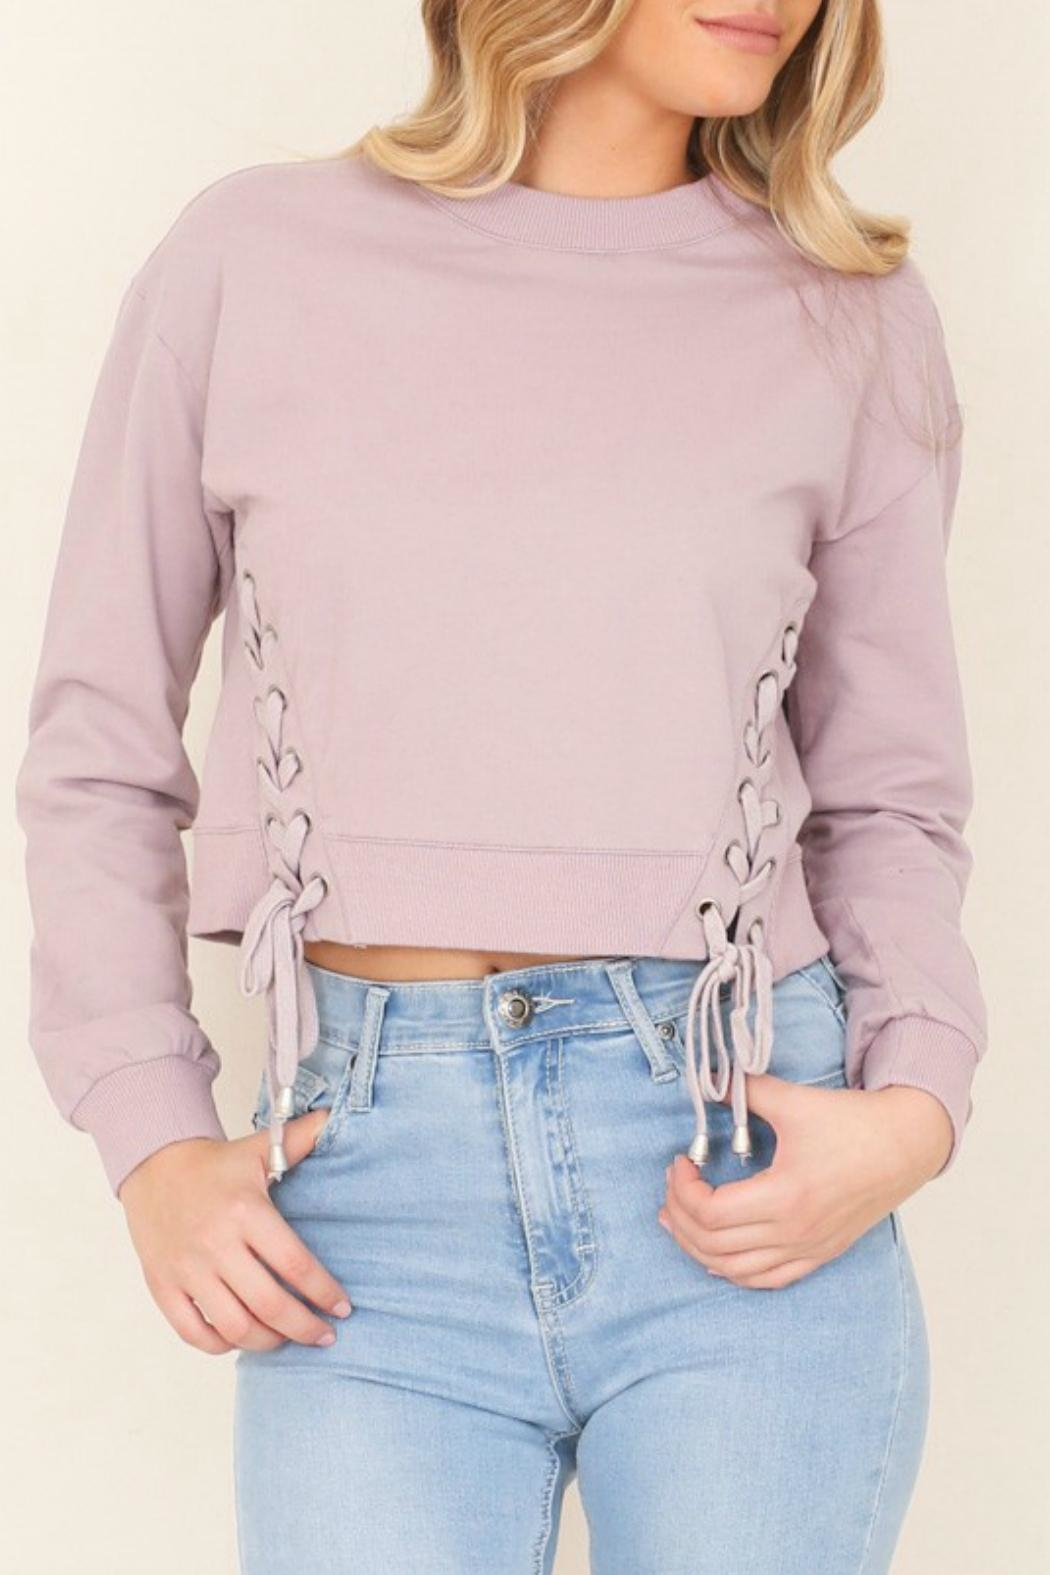 Illa Illa Cropped Side-Lace Sweatshirt - Main Image